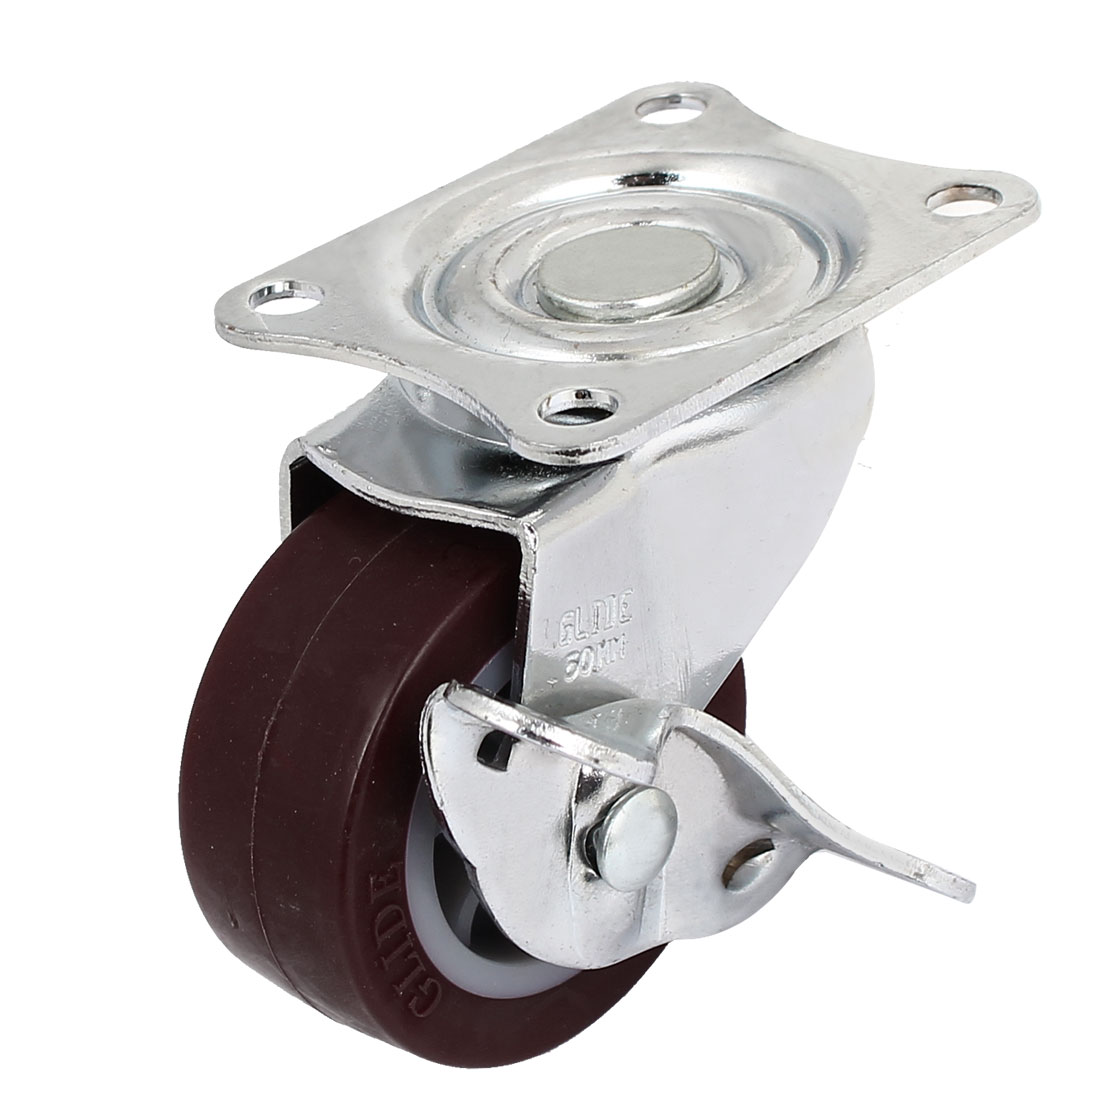 50mm Hard Rubber Base Metal Top Plate Bearing Caster Wheels